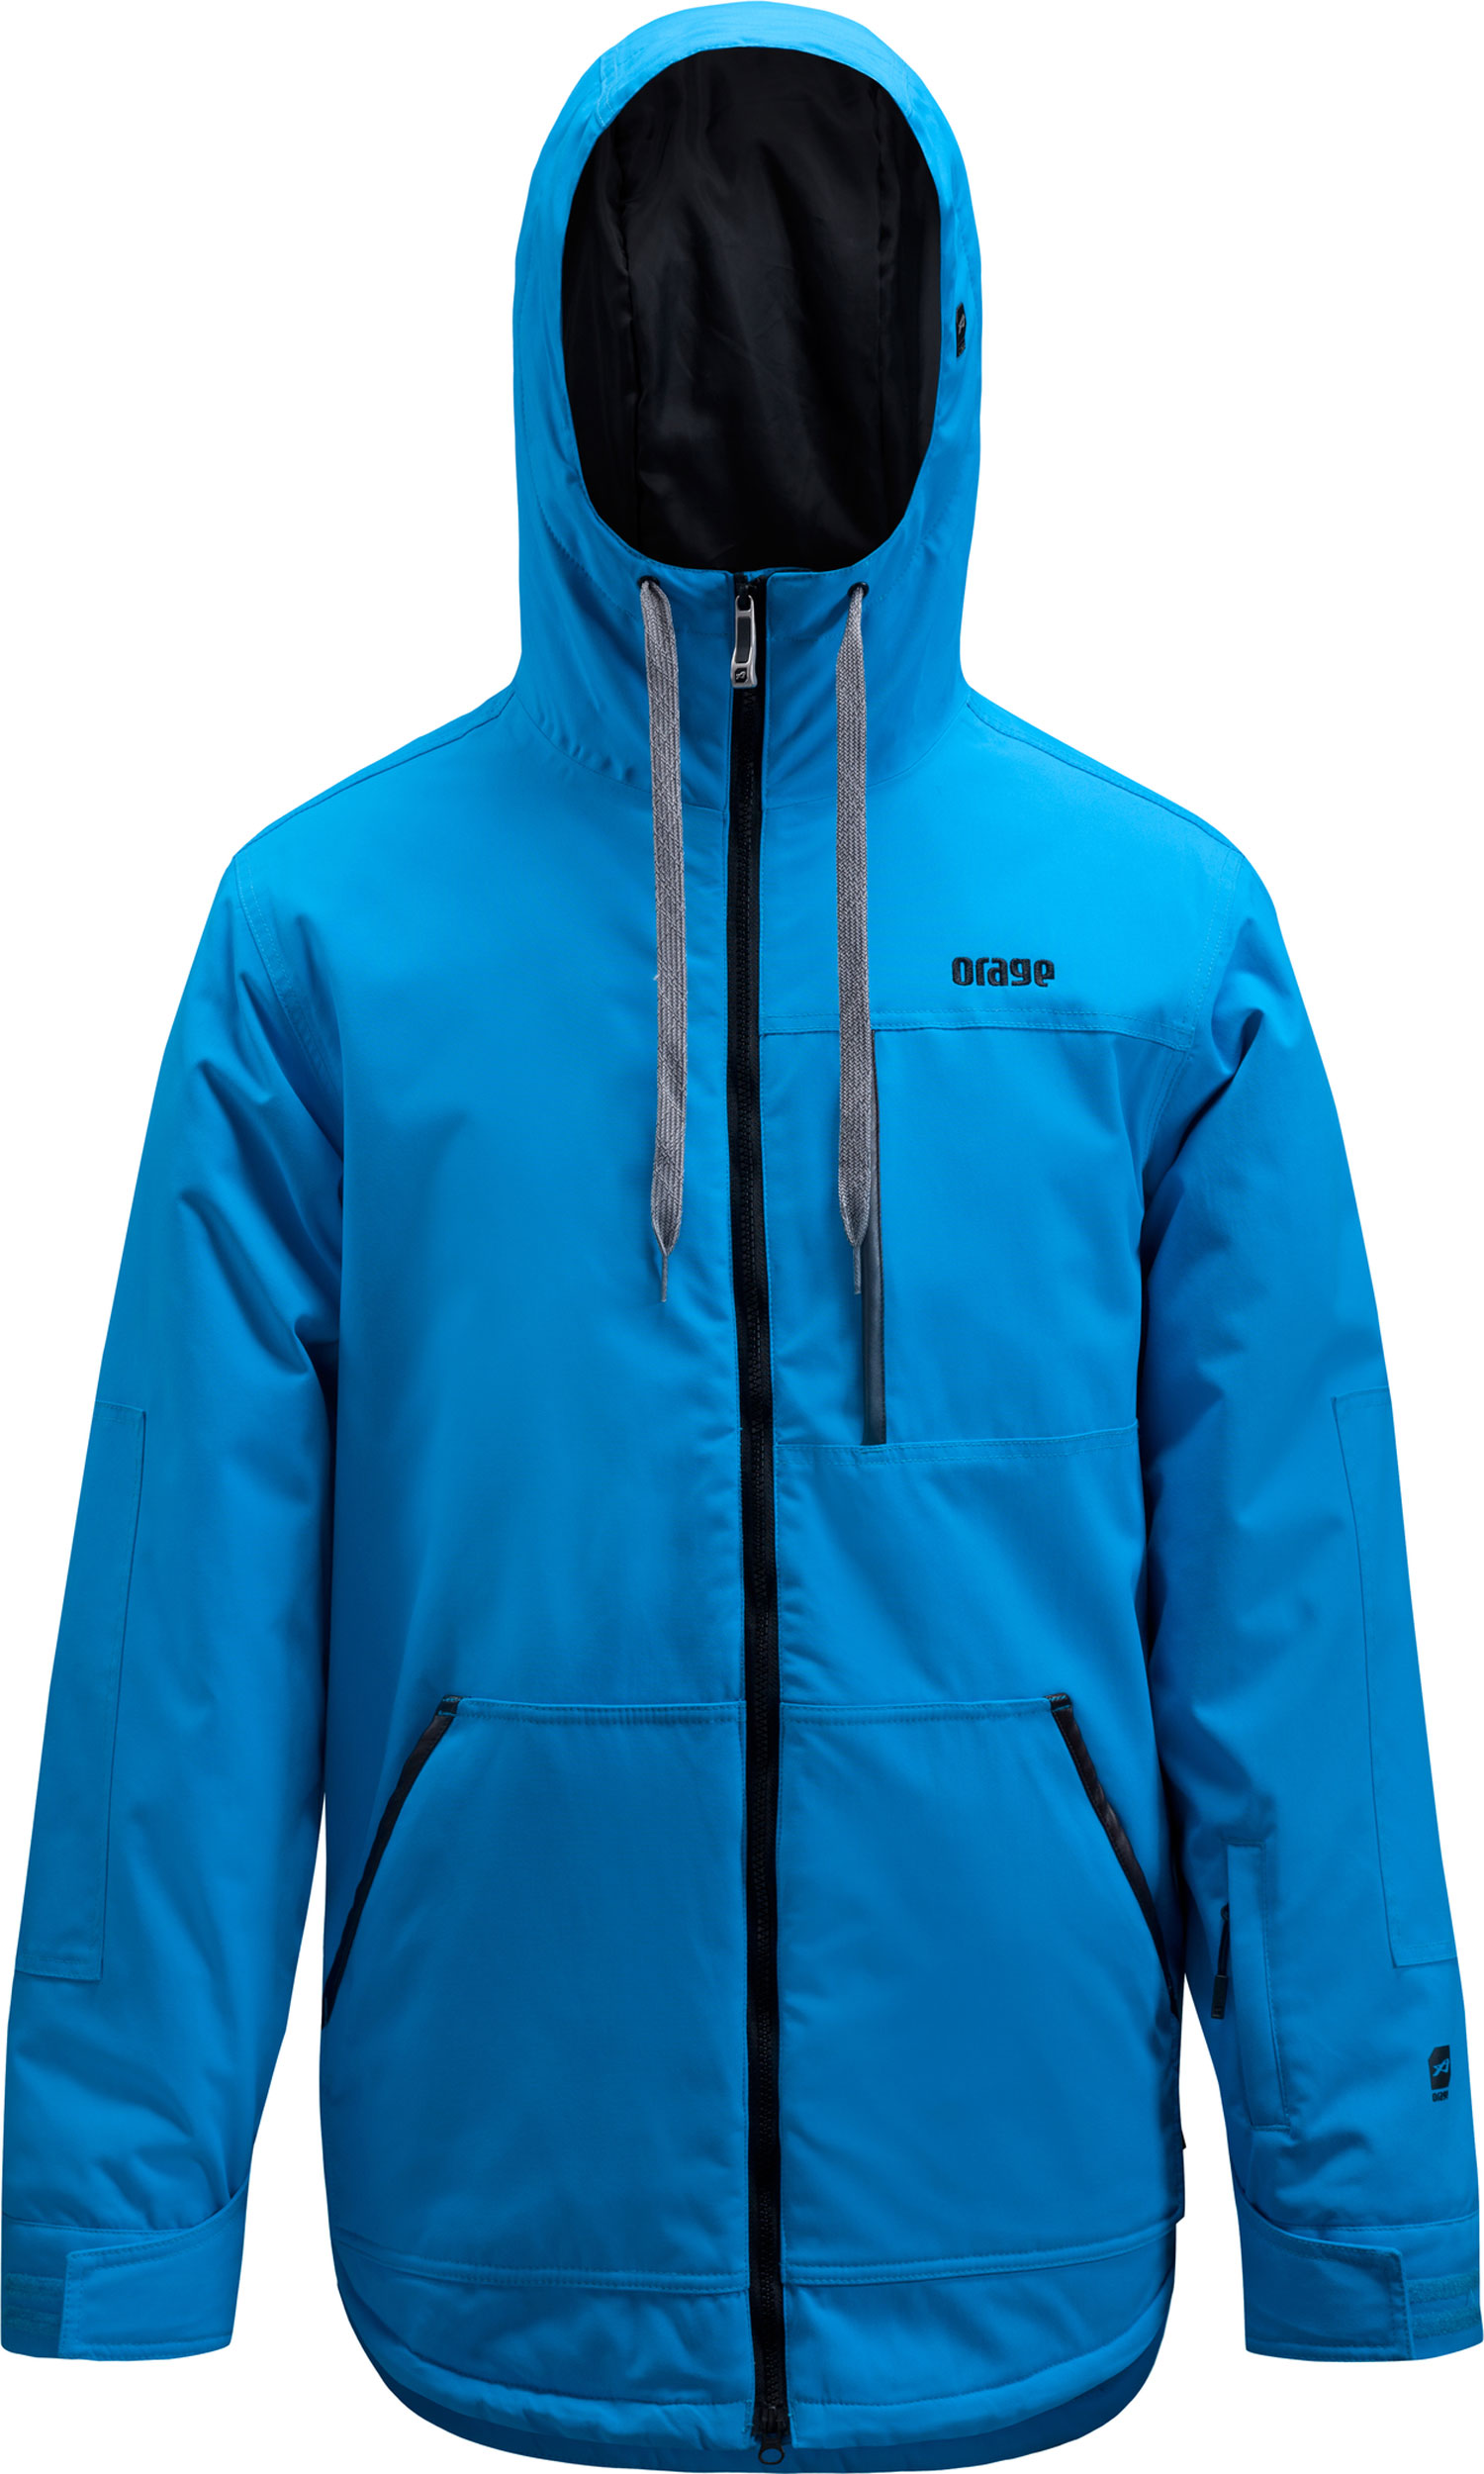 Ski Key Features of the Orage Flux Jacket: Prime 10: Canvas 2 ply 100% Nylon, ECO DWR 80/10, 185g/m2 Strategically seam sealed Powder skirt Lining with fleece panel insert Antimicrobial hand cuffs - $148.95